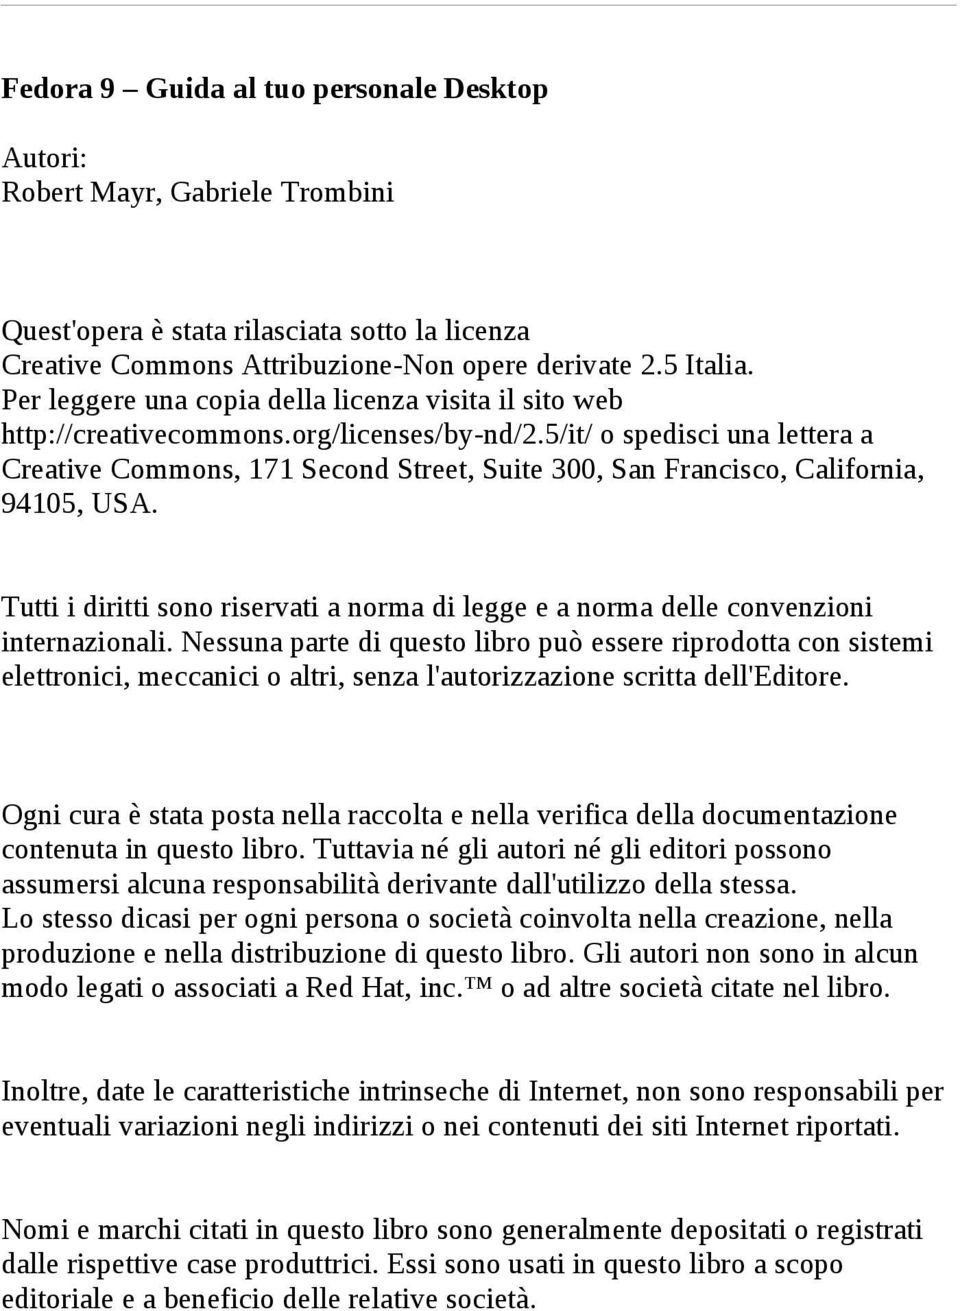 5/it/ o spedisci una lettera a Creative Commons, 171 Second Street, Suite 300, San Francisco, California, 94105, USA.